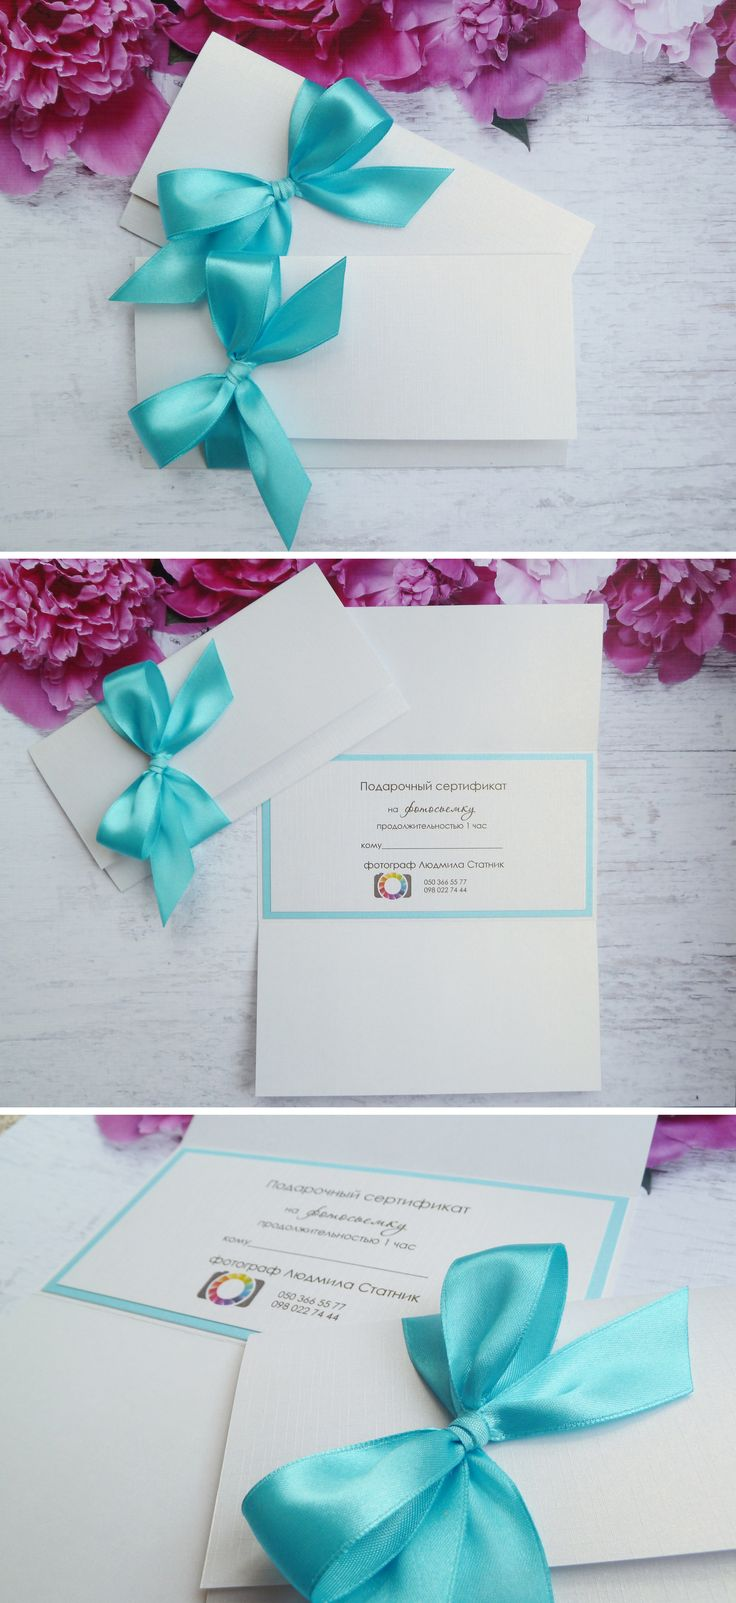 9 best certificate images on Pinterest | Gift cards, Gift vouchers ...